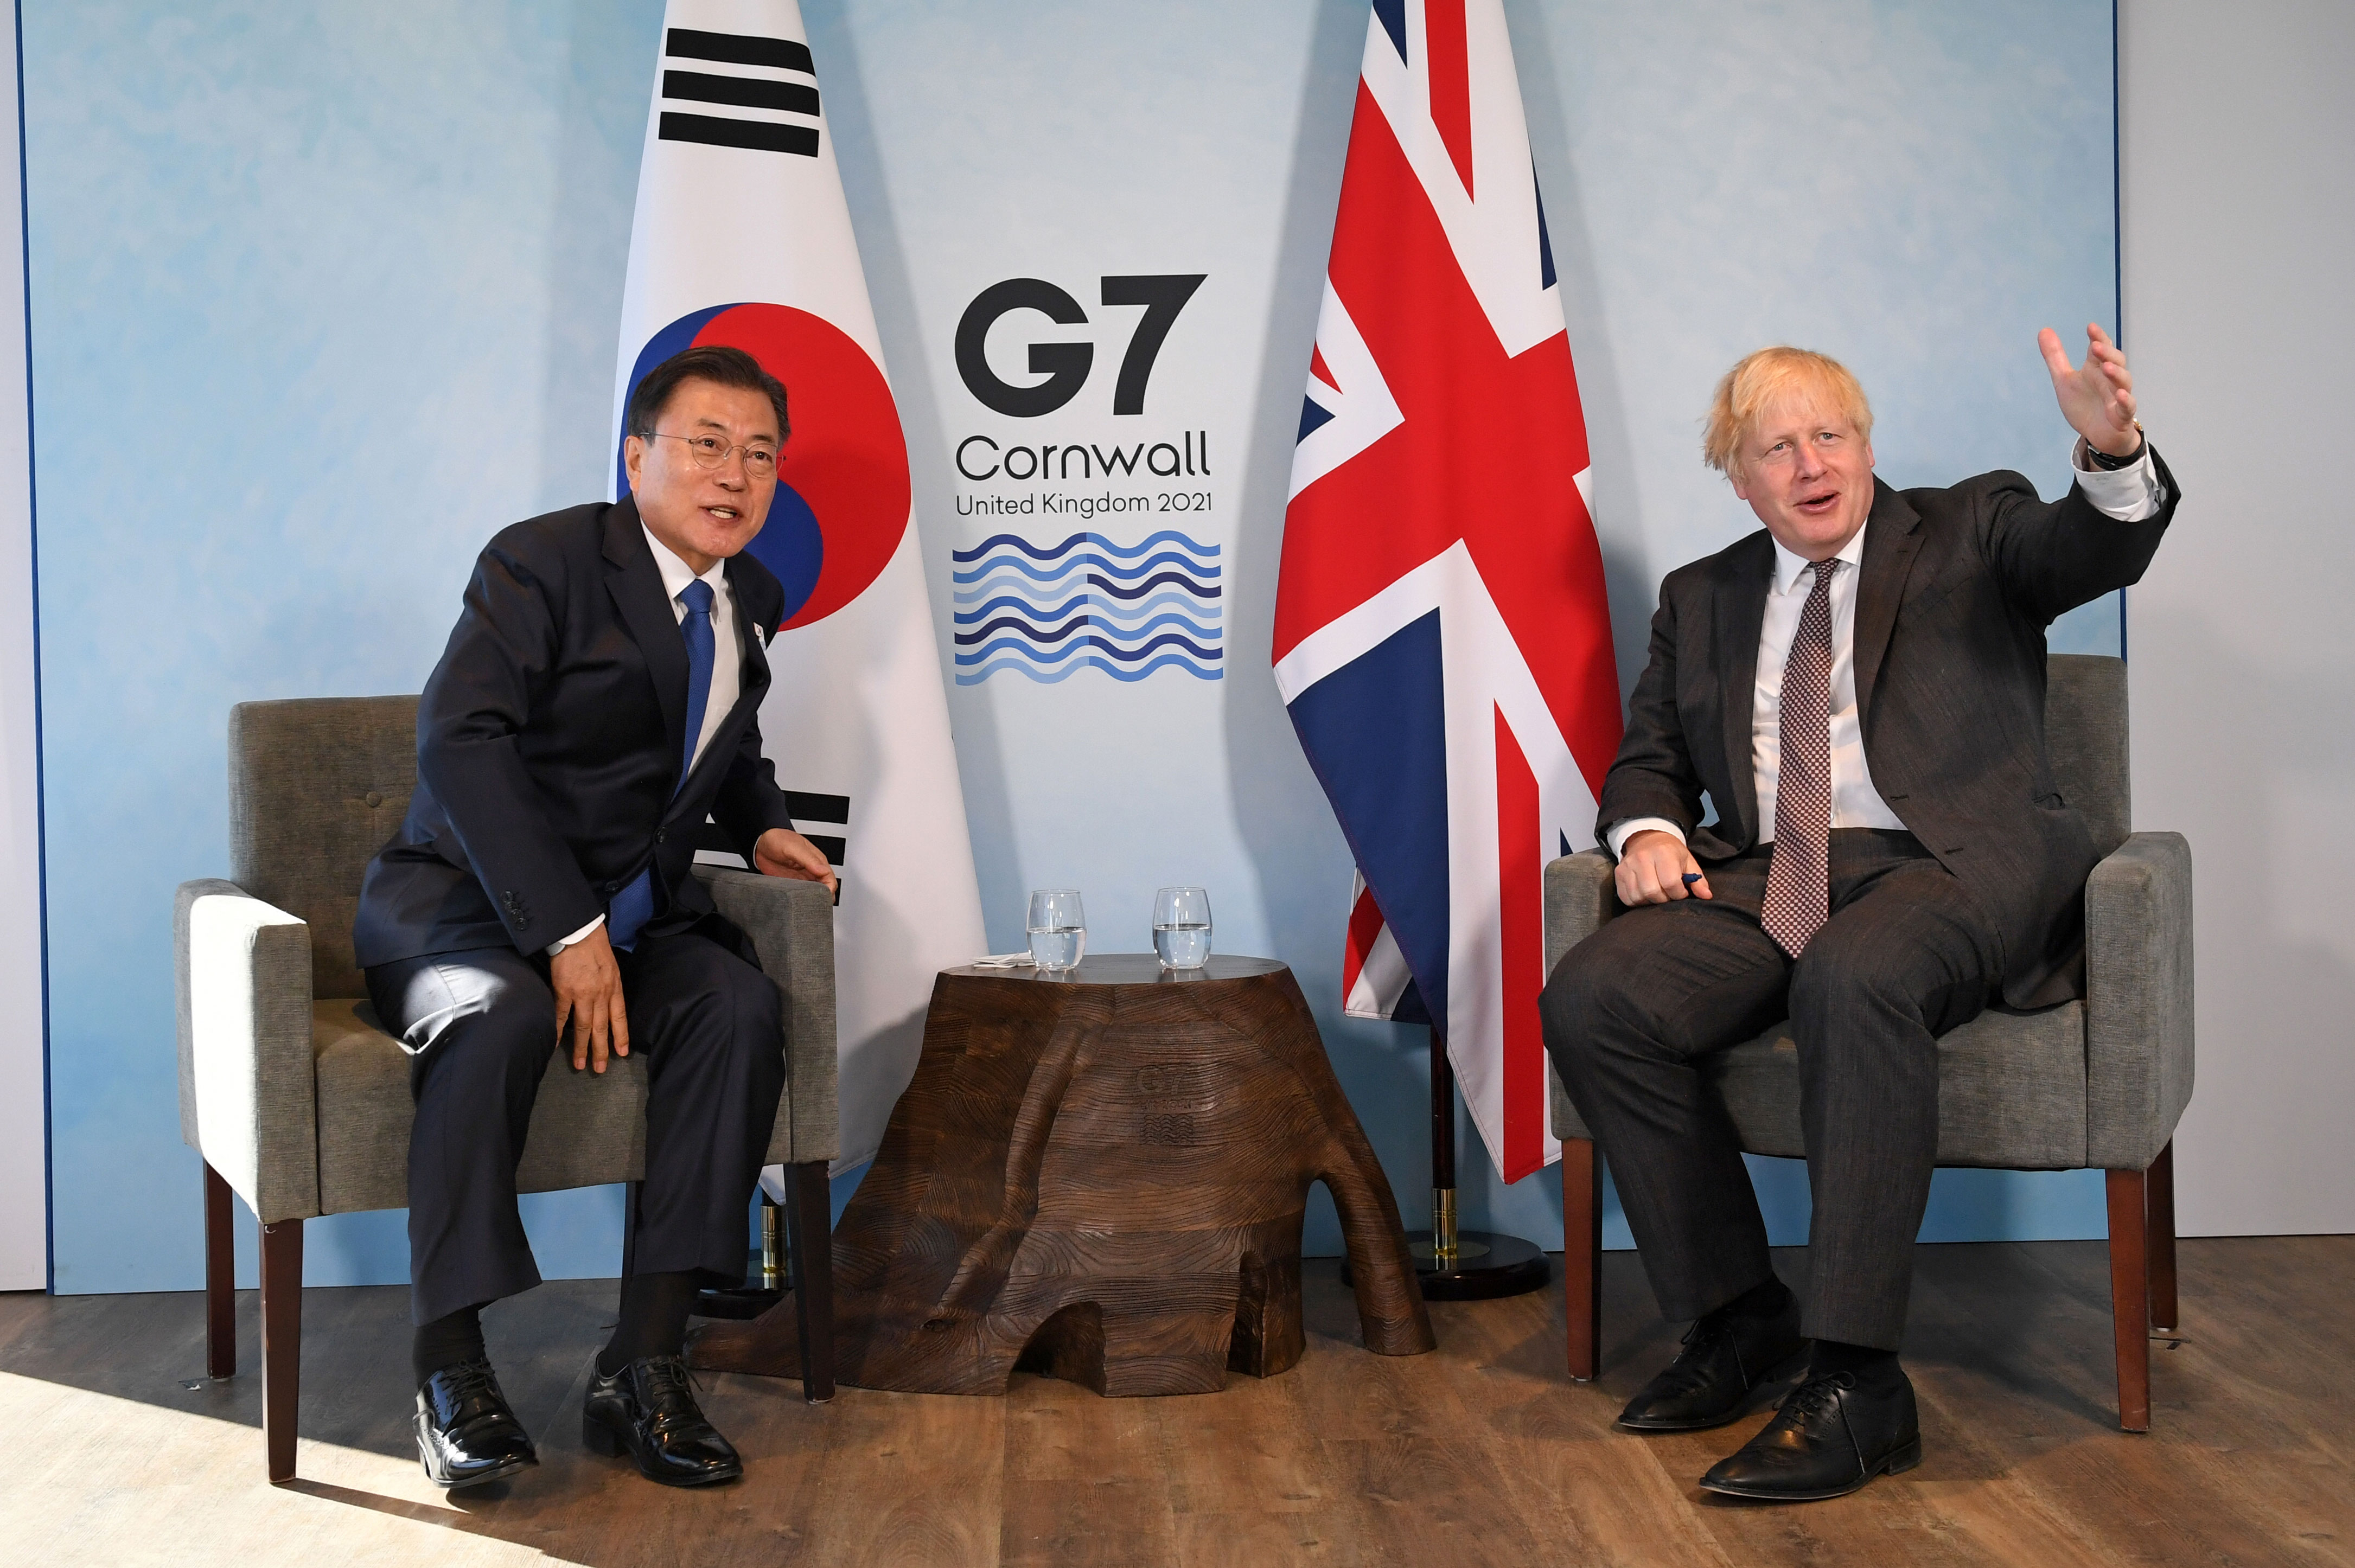 South Korea's President Moon Jae-in meets with UK Prime Minister Boris Johnson in Carbis Bay, England, on June 13.